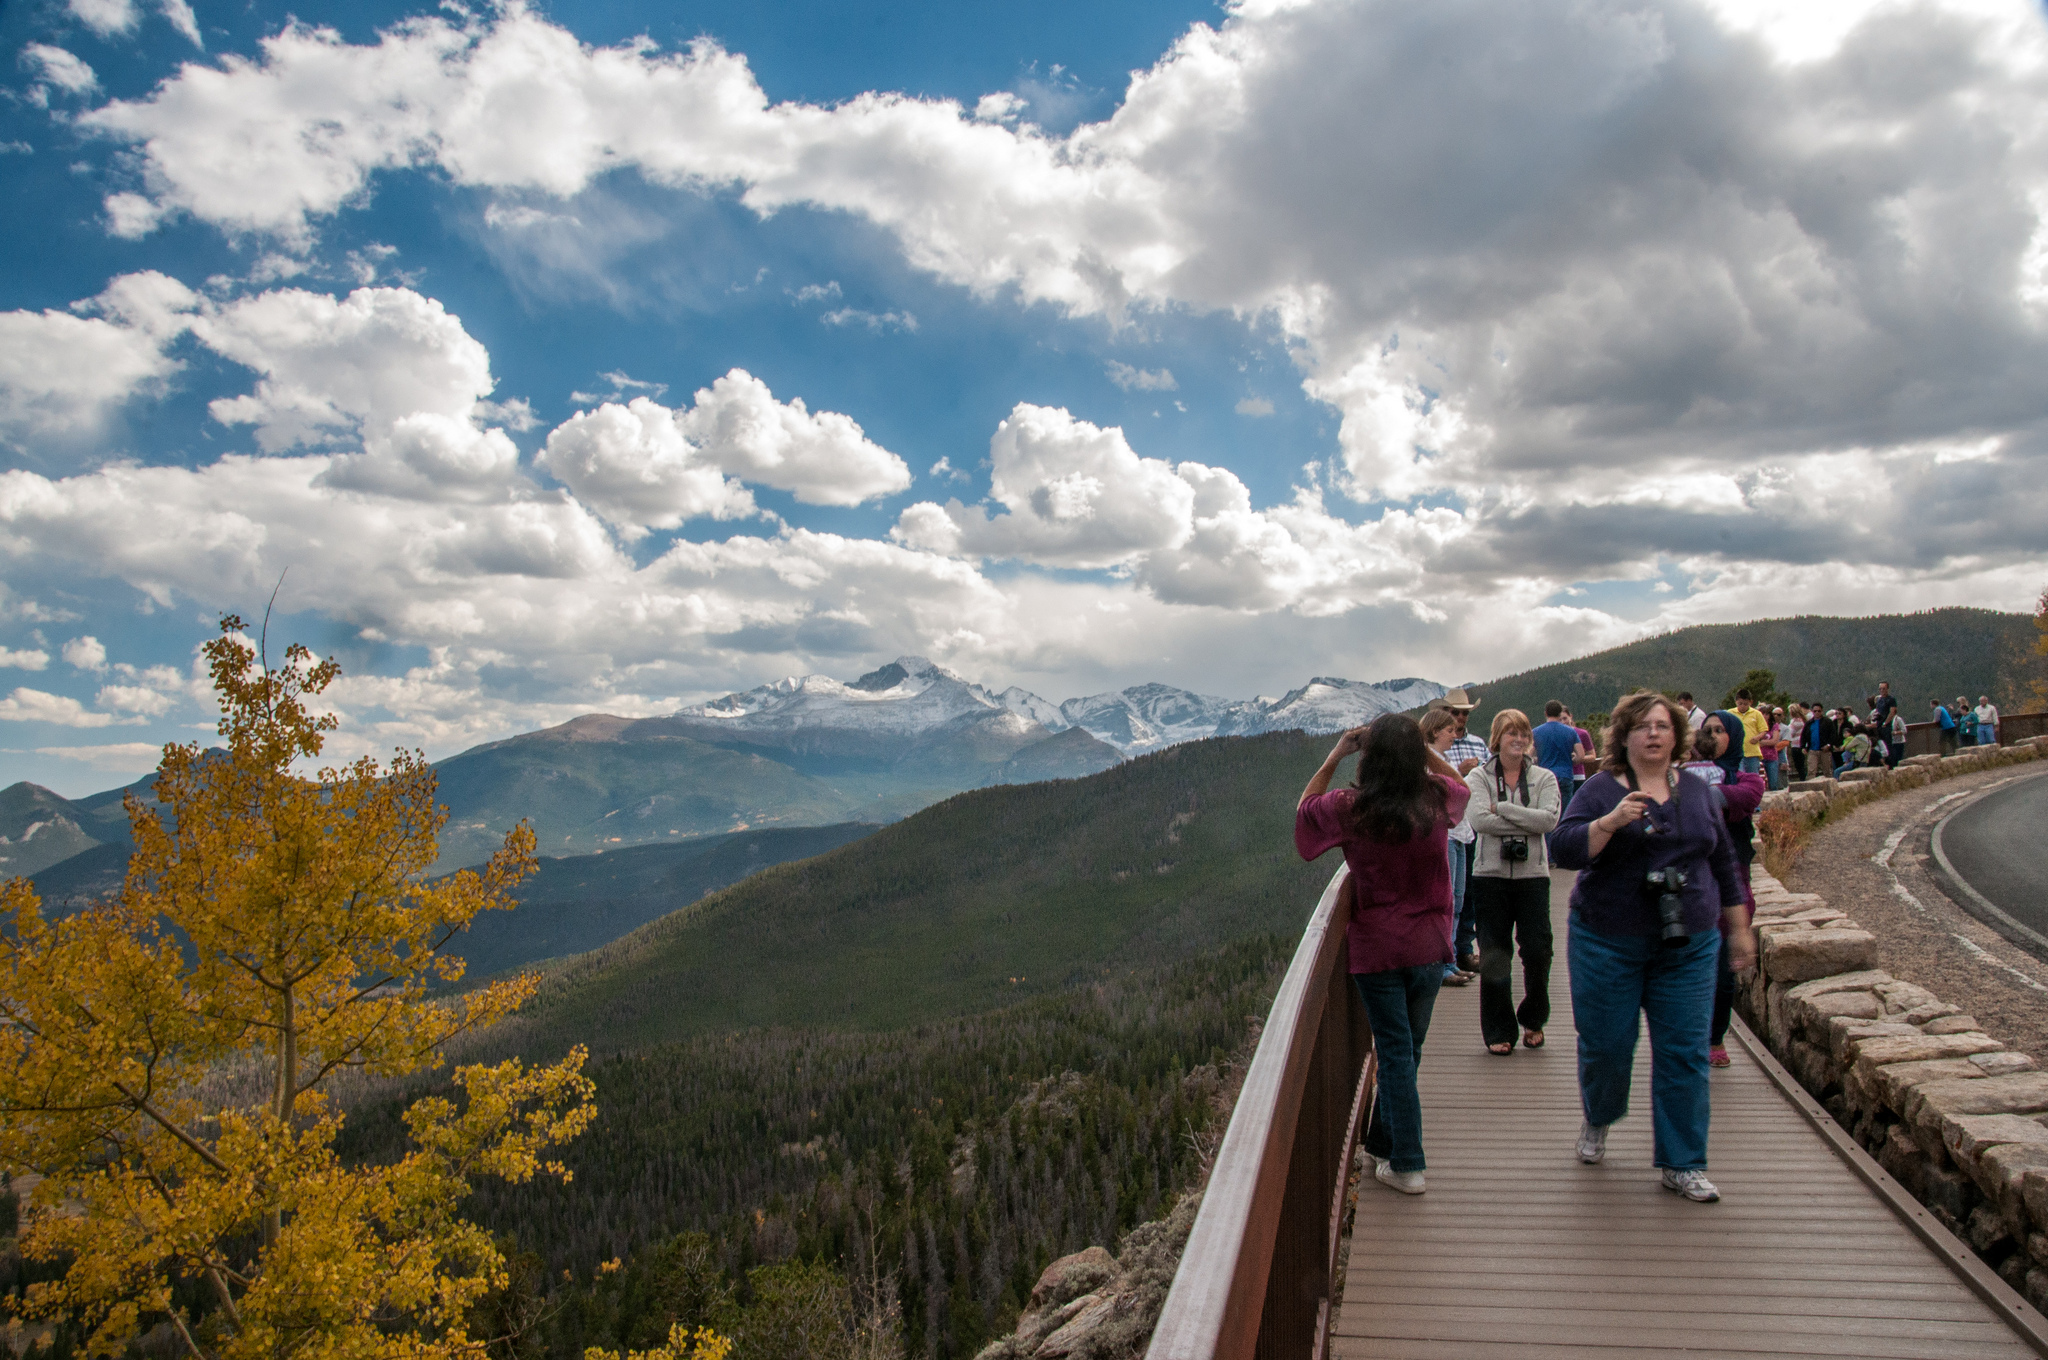 Photo: Crowds in Rocky Mountain National Park